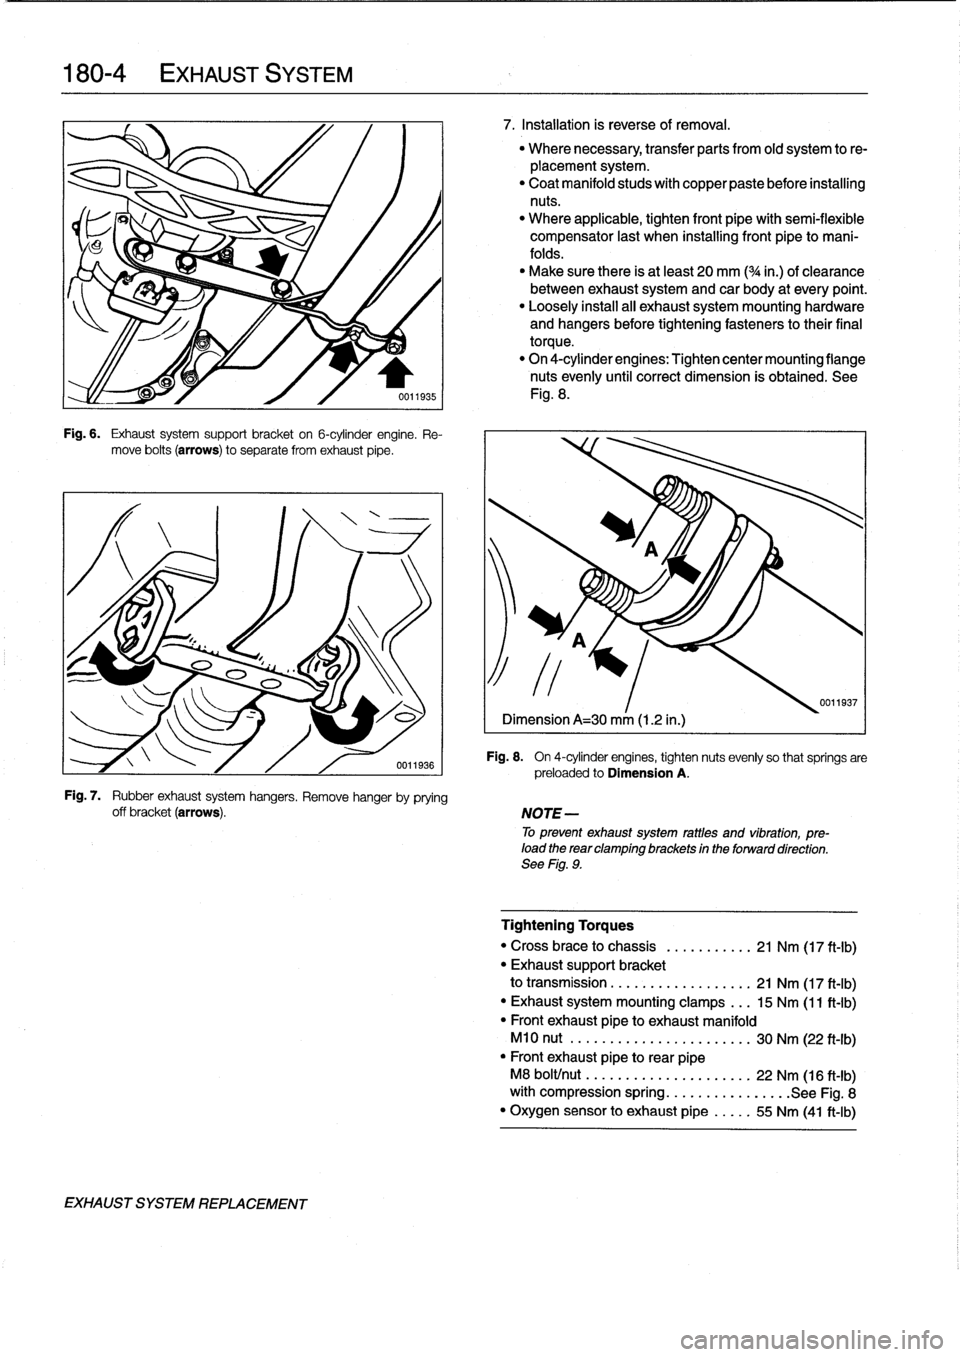 BMW 328i 1997 E36 Workshop Manual (759 Pages), Page 210: 5